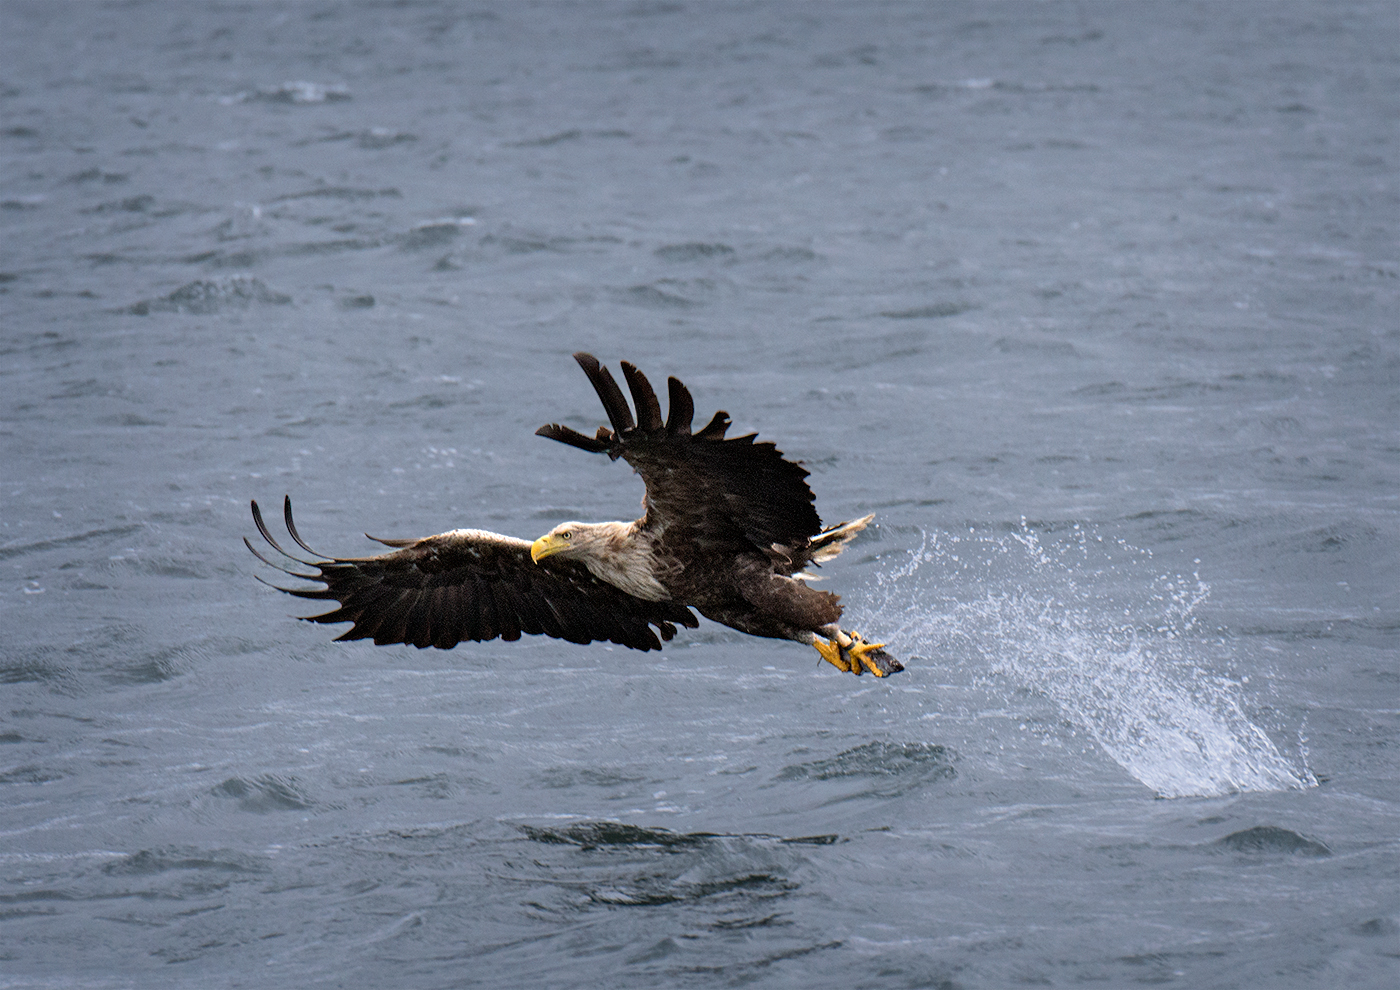 sea-eagle-snatching-fish-2